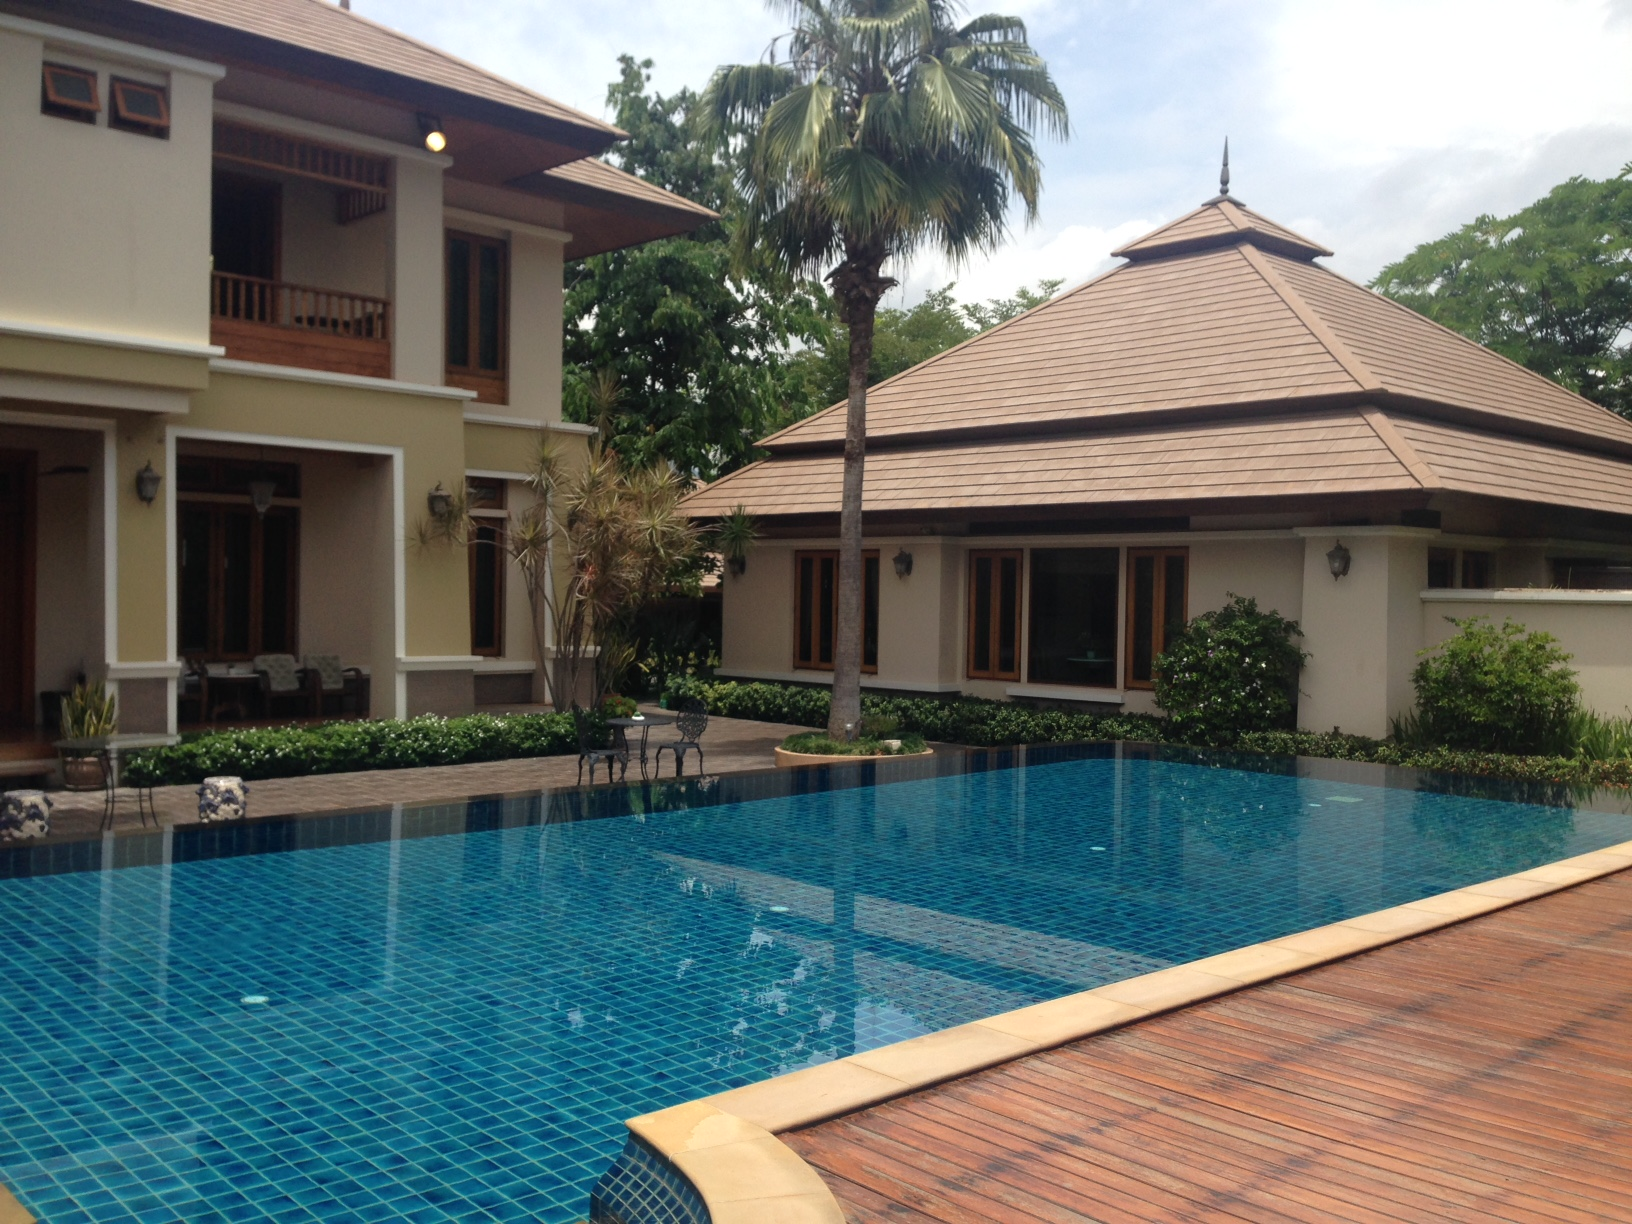 House for sale beautiful modern style private pool chiangmai id hs108 for Chiang mai house for rent swimming pool